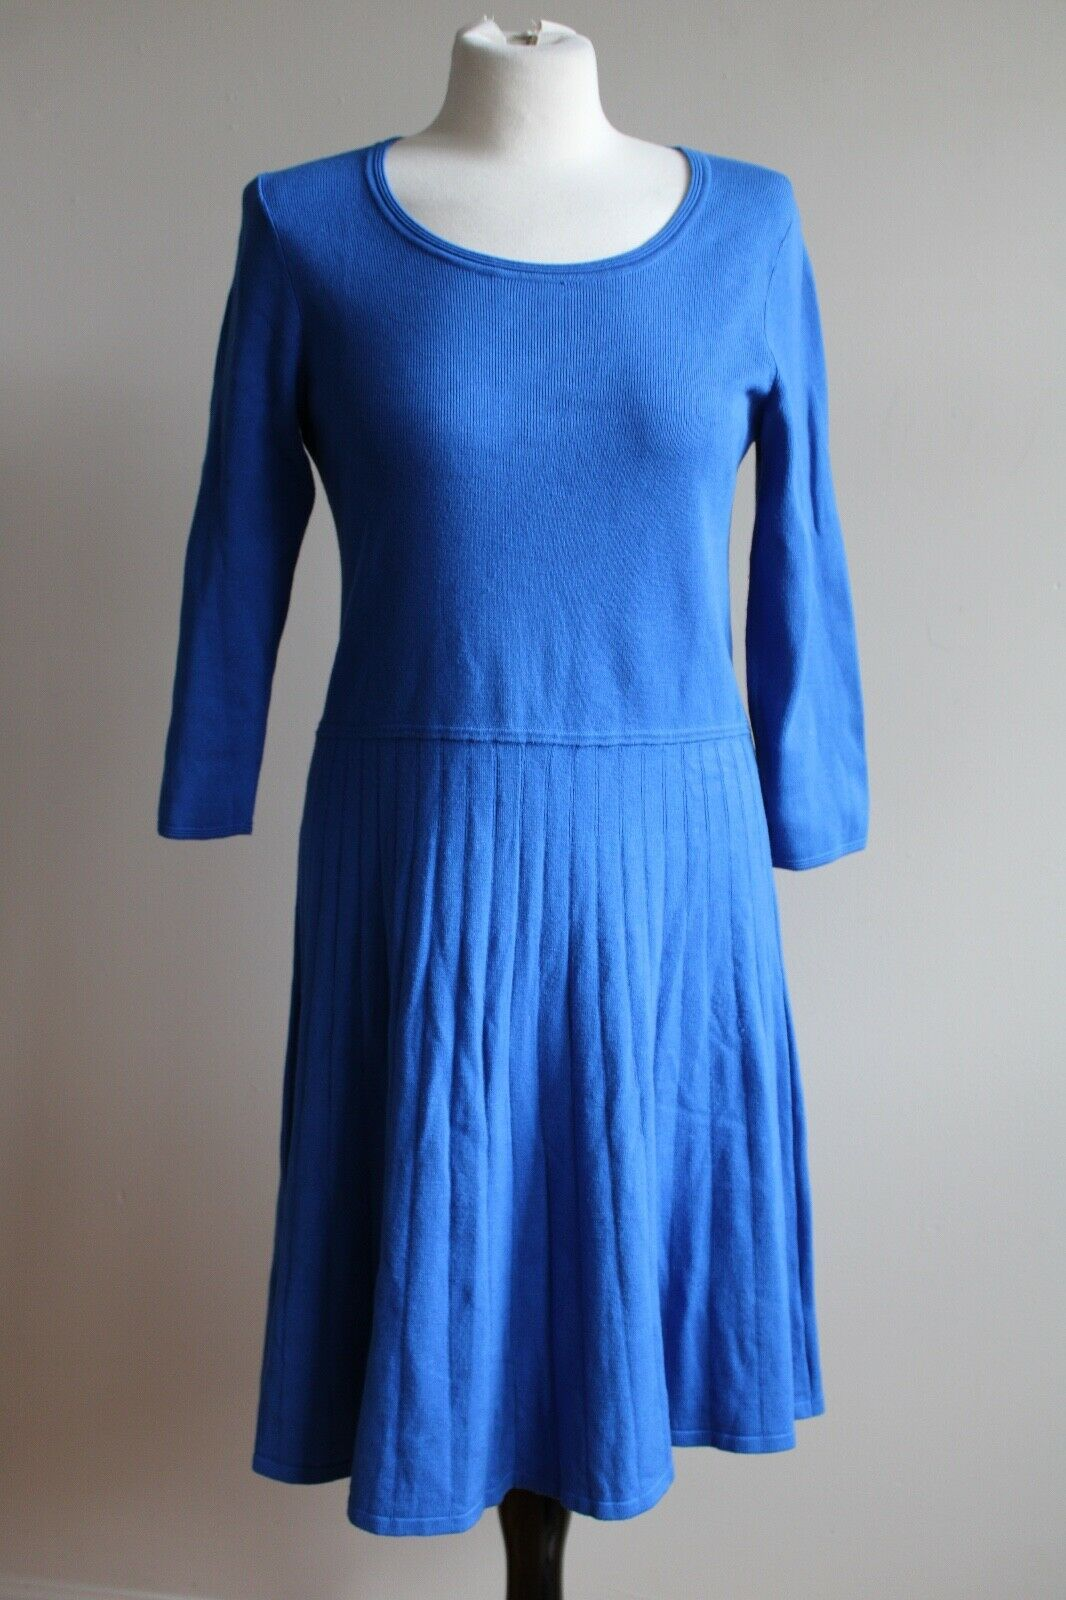 Primary image for Talbots MP Blue Pleated Skirt Knit Sweater Dress